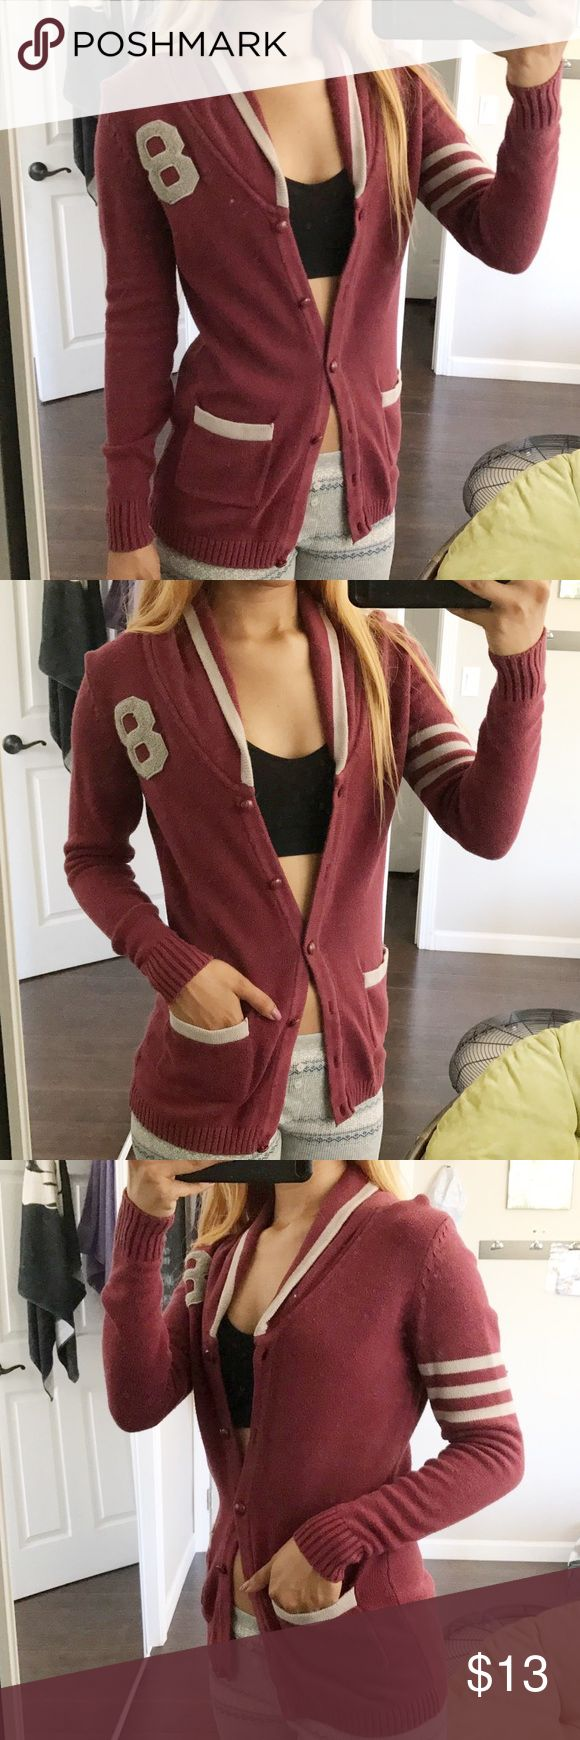 F21 Letterman Cardigan✨ SIZE SMALL💫 Burgundy Letterman Cardigan✨Perfect outdoor cardigan & comfortable! It's a thick material that will keep you warm! It has two small front pockets & on the right sleeve it has three grey lines & top front left of the cardigan it has the number 8 sewn in. I love the neck line of it! The color of the cardigan is a bit worn out but It's a great piece for the fall✨ Forever 21 Sweaters Cardigans